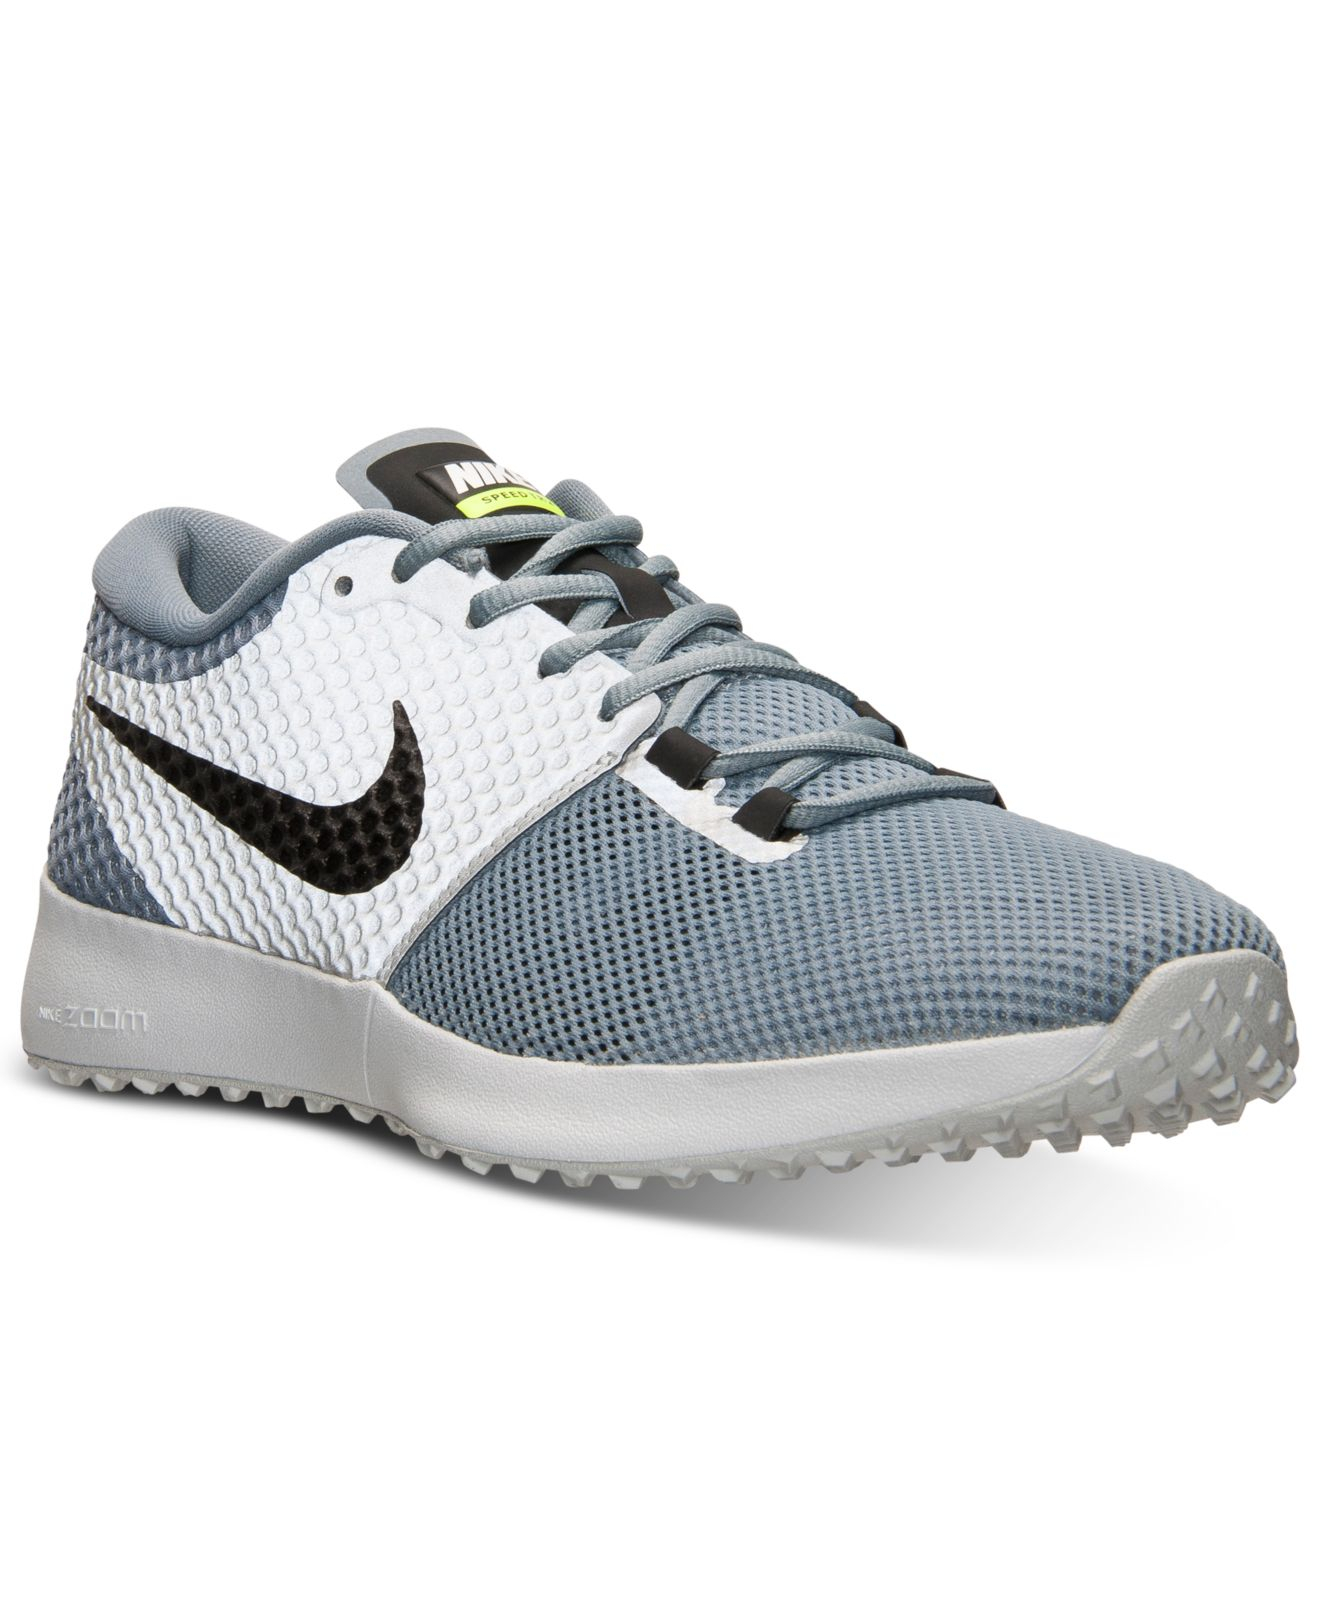 best cheap 64fa6 ab369 nike-white-mens-zoom-speed-tr-2-training-sneakers -from-finish-line-product-1-25400631-0-975807552-normal.jpeg